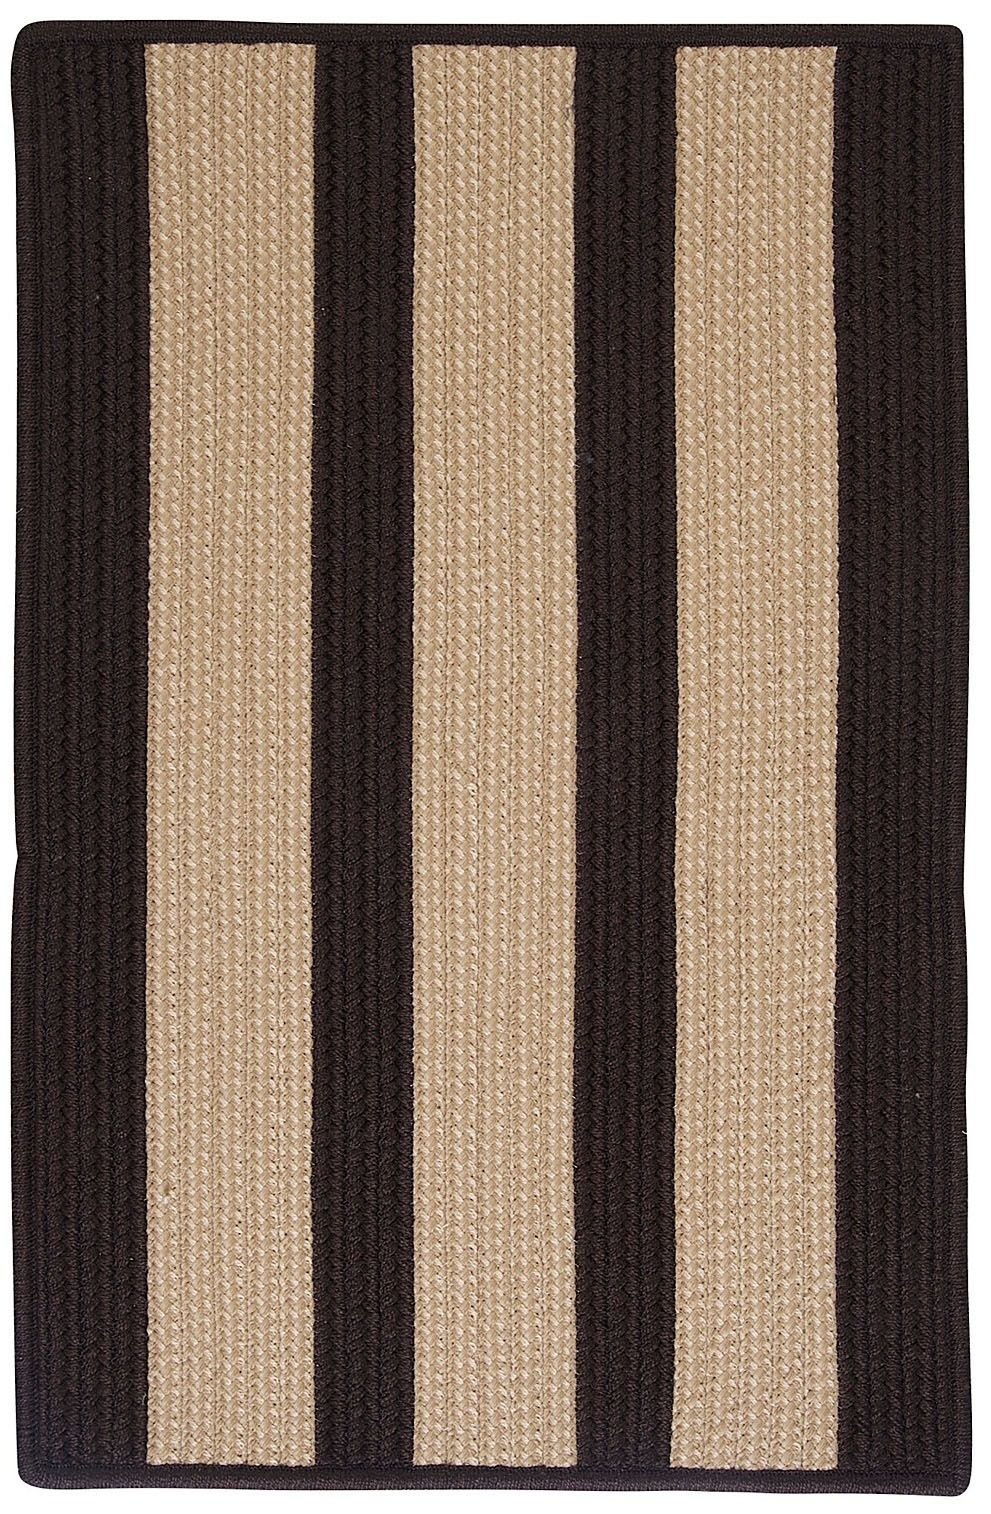 colonial mills boat house braided area rug collection